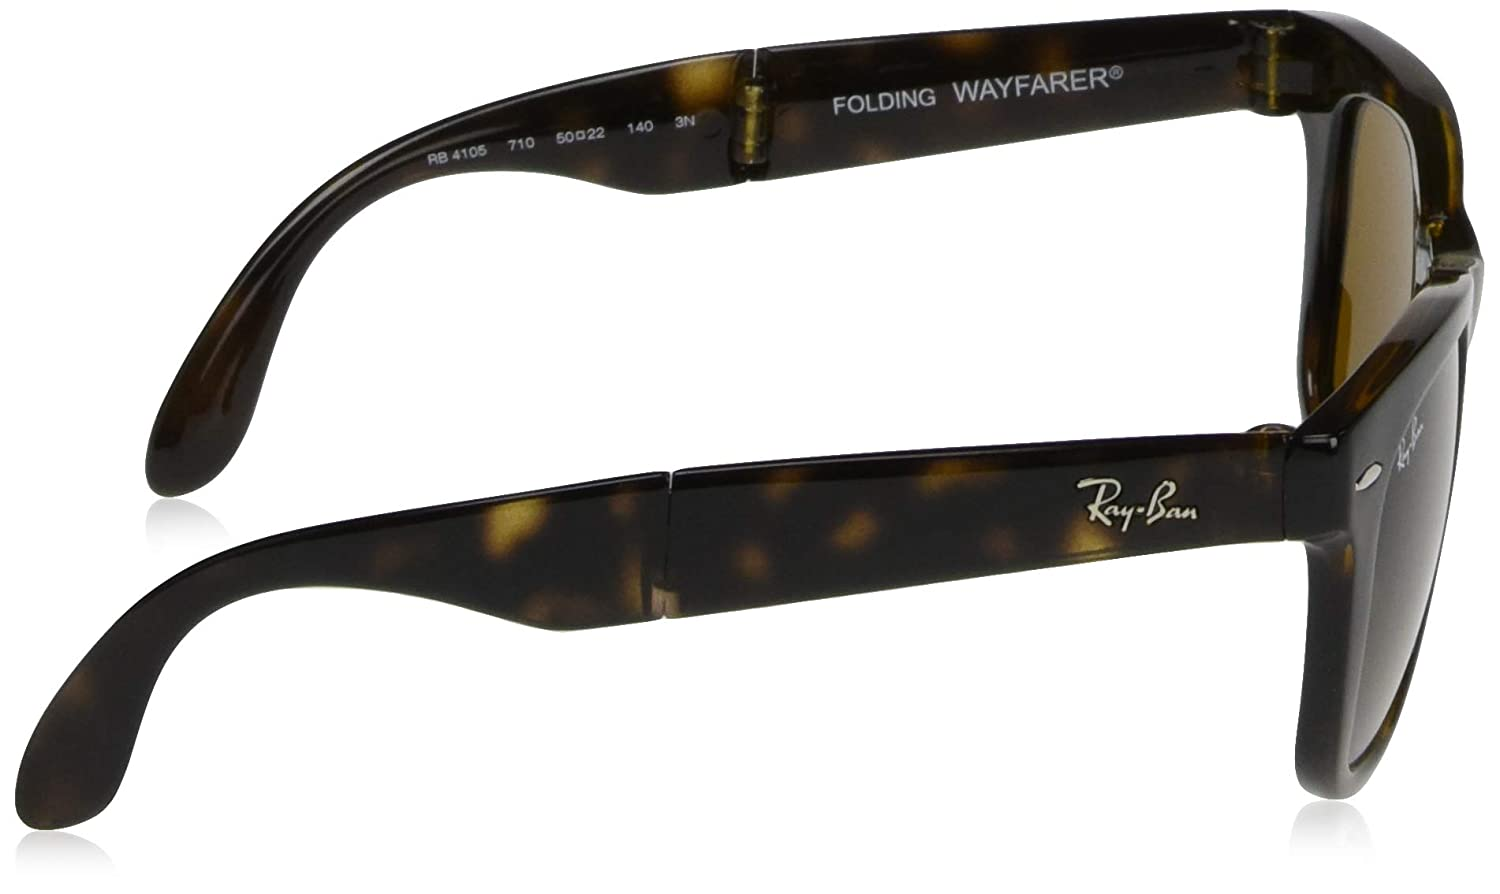 Amazon.com: Ray-Ban RB4105 Wayfarer Folding Sunglasses: Shoes